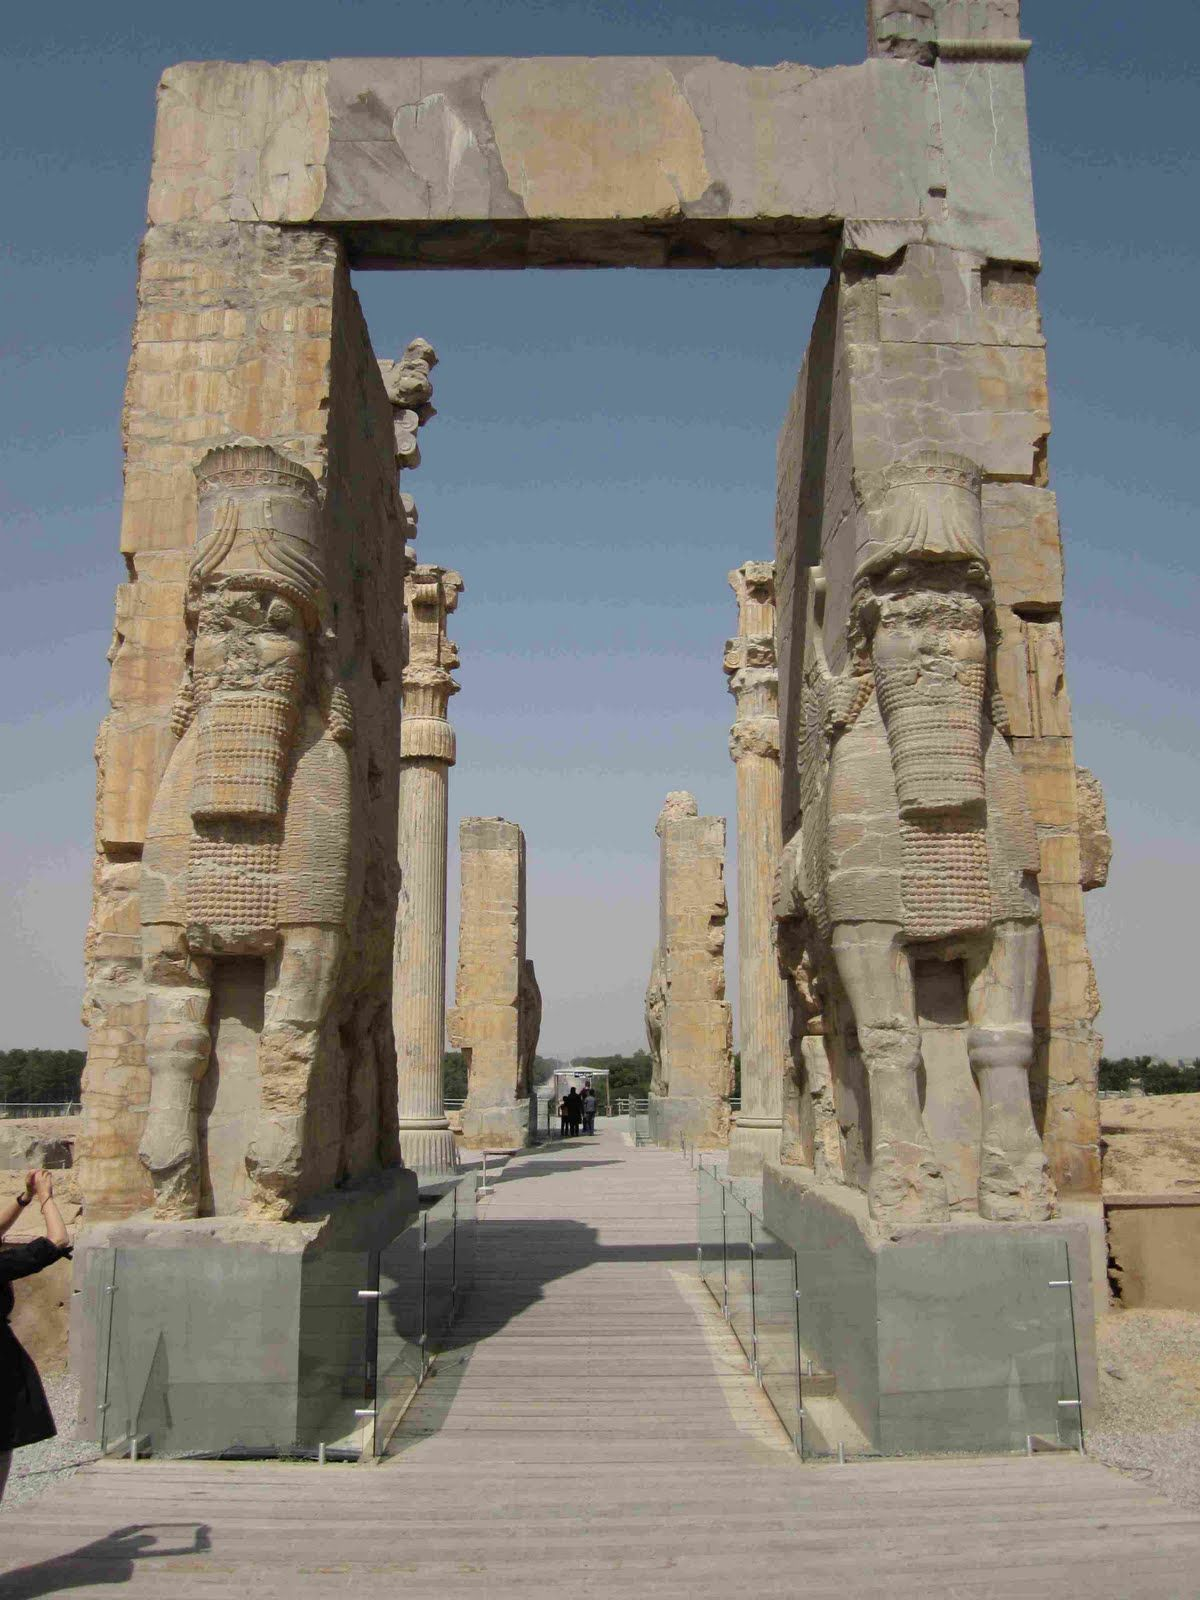 The entrance to the ancient city of Persepolis in Iran ...